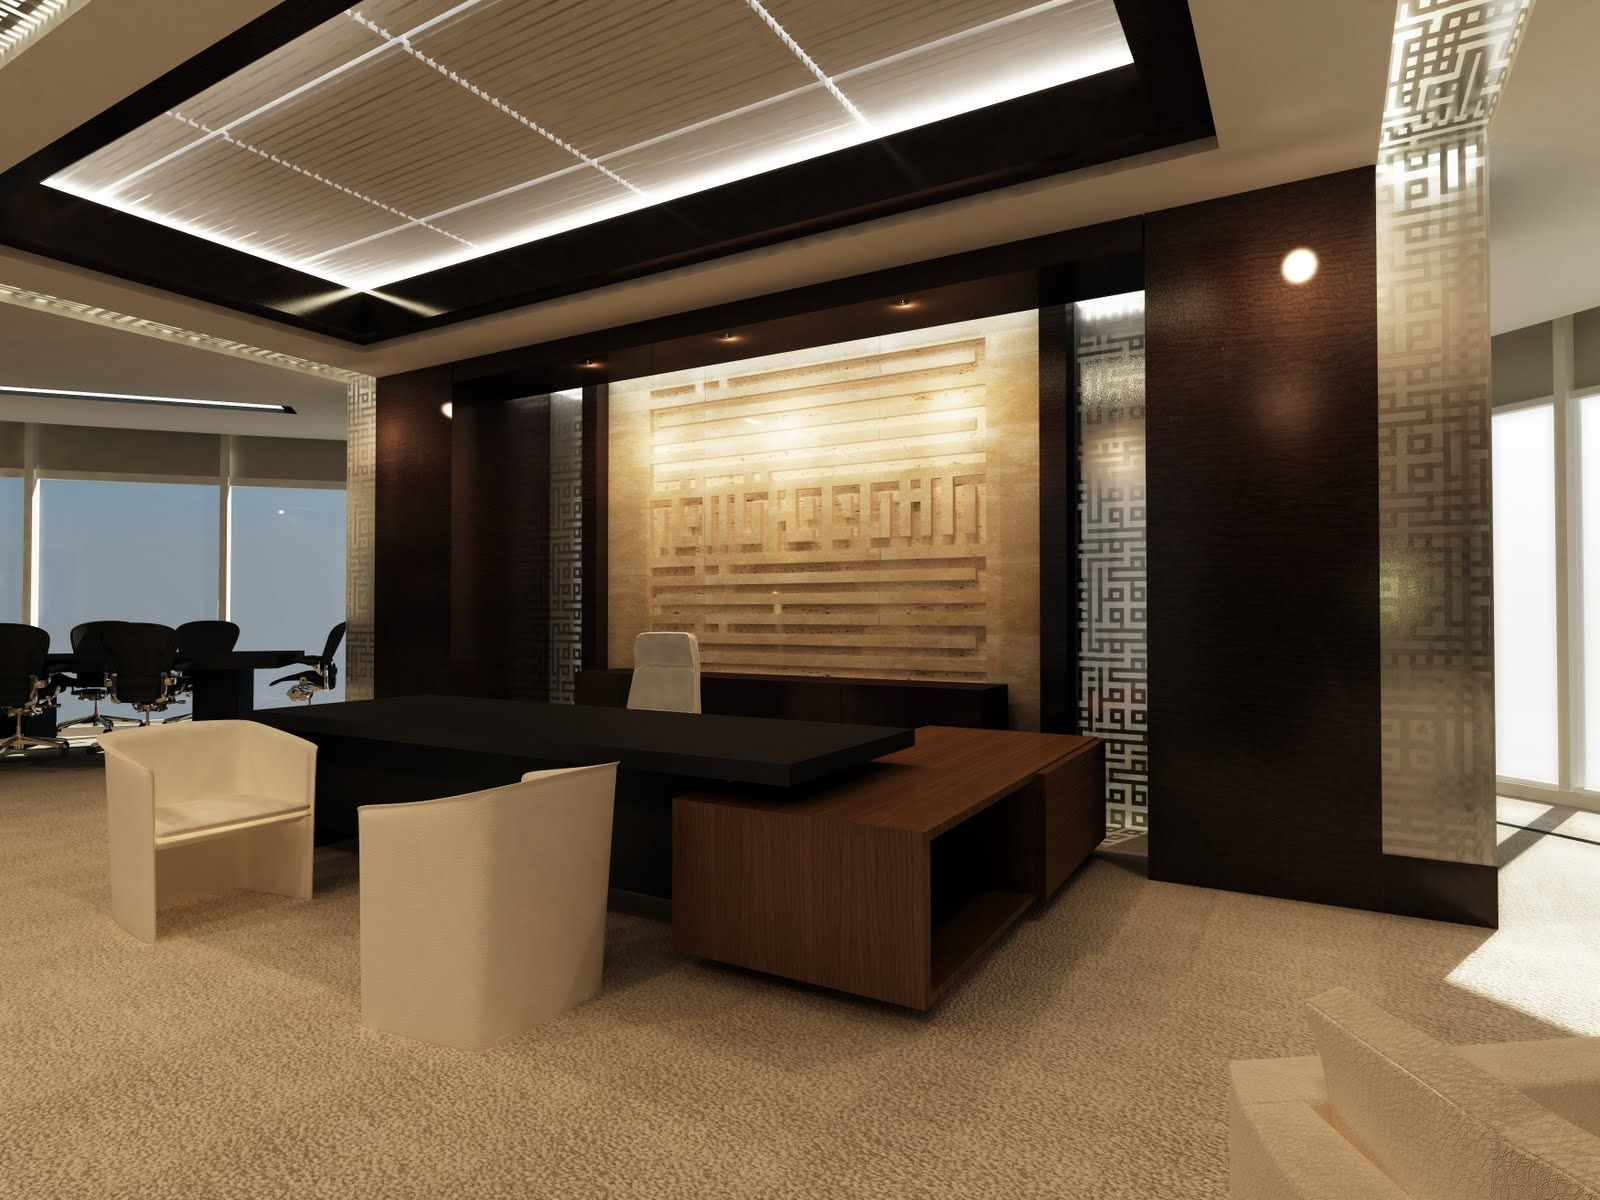 Office interior design intended for office interior design ideas interior designs other design magnificent interior designers office decorating ideas with awesome office furniture decorating and splendid l shaped office amipublicfo Gallery